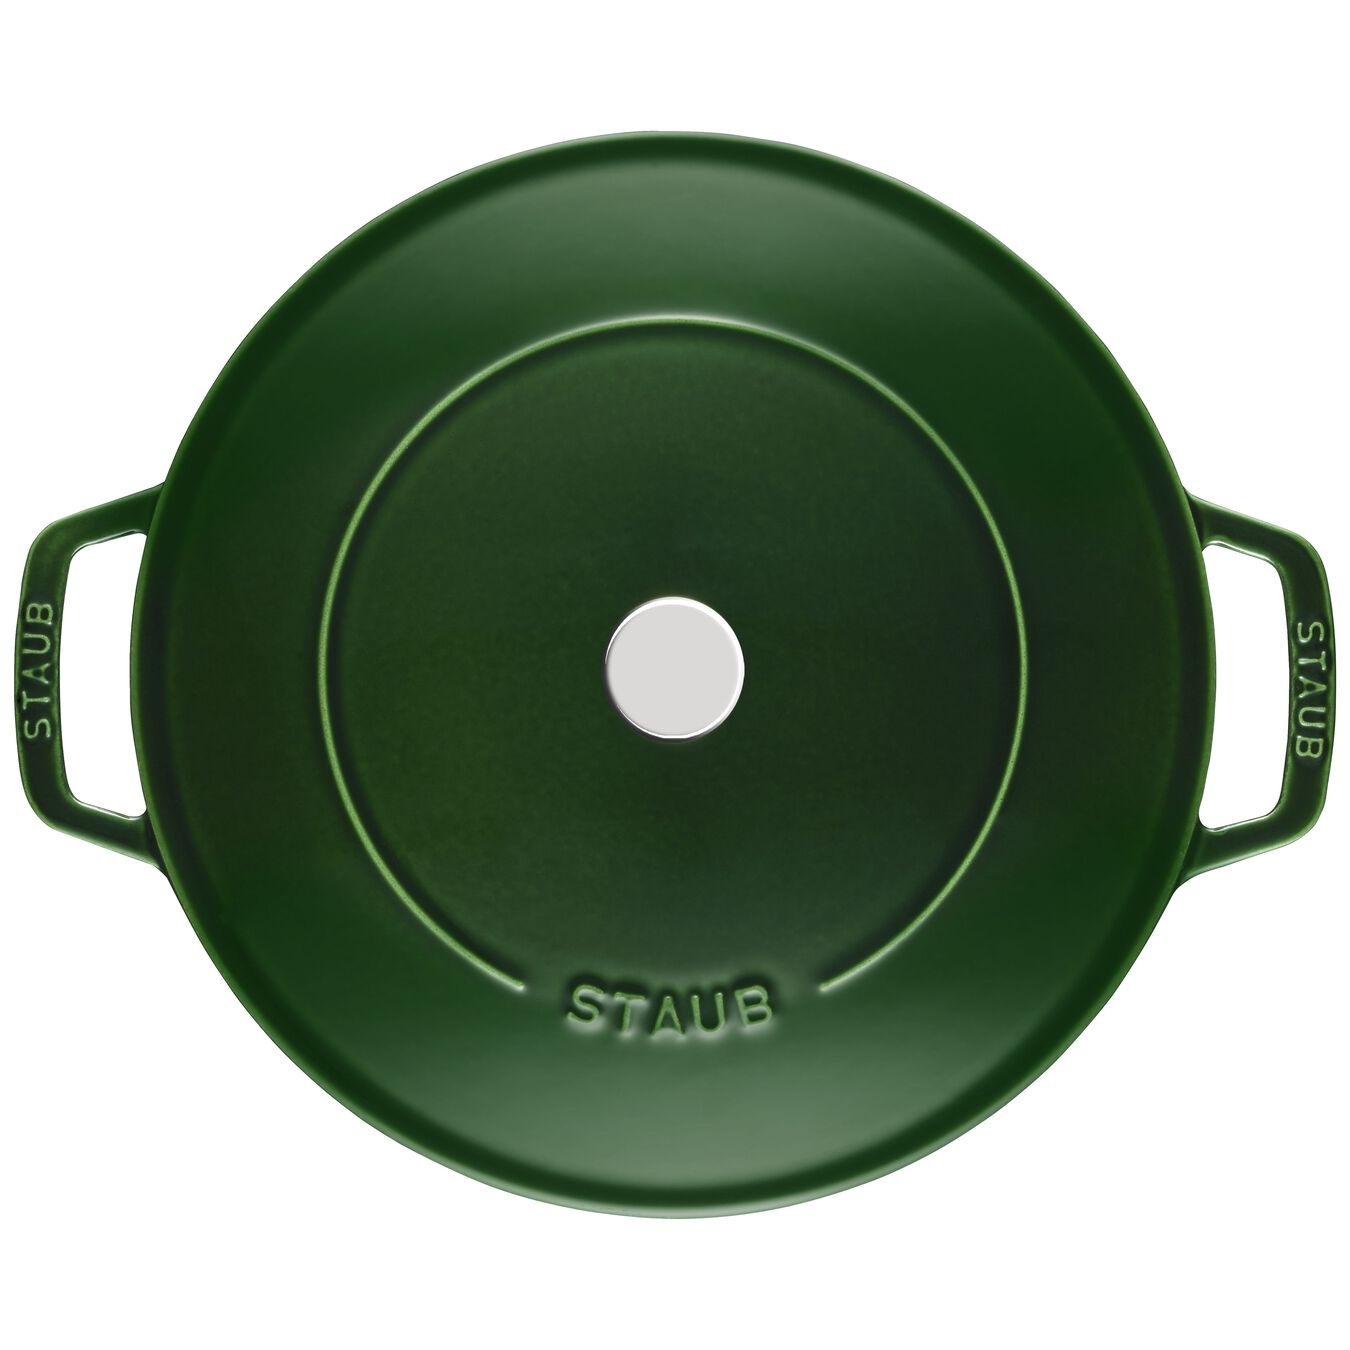 2.5 l Cast iron round Saute pan Chistera, Basil-Green,,large 2